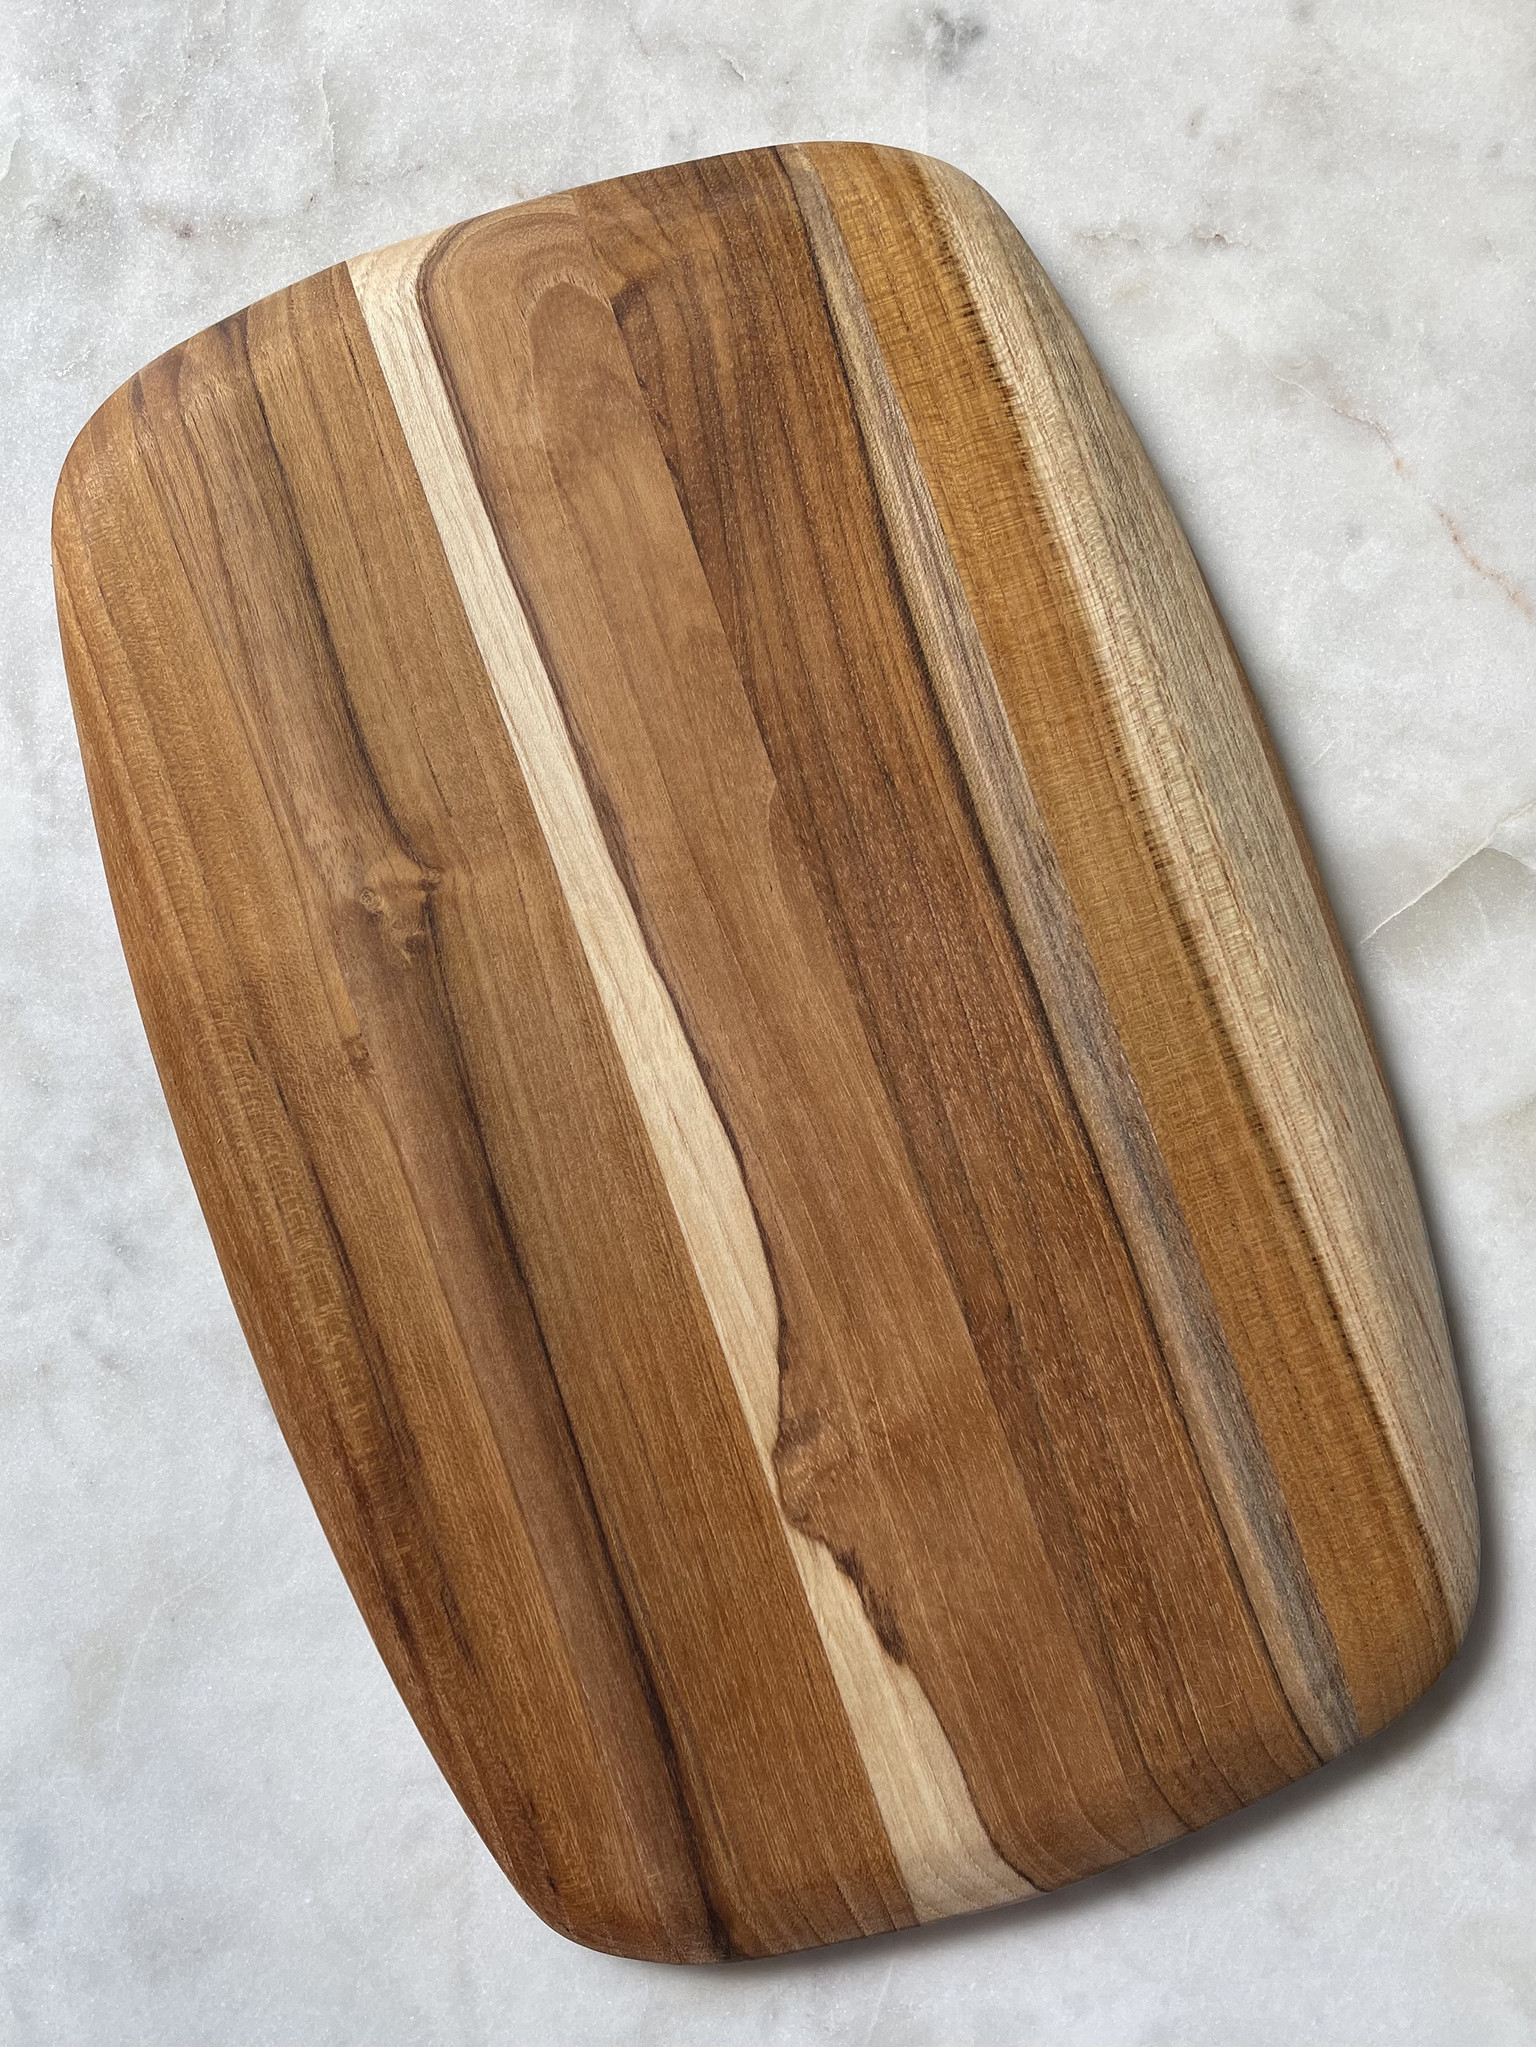 Proteak Teak Haus Oval Cutting Board with Rounded Edges-1